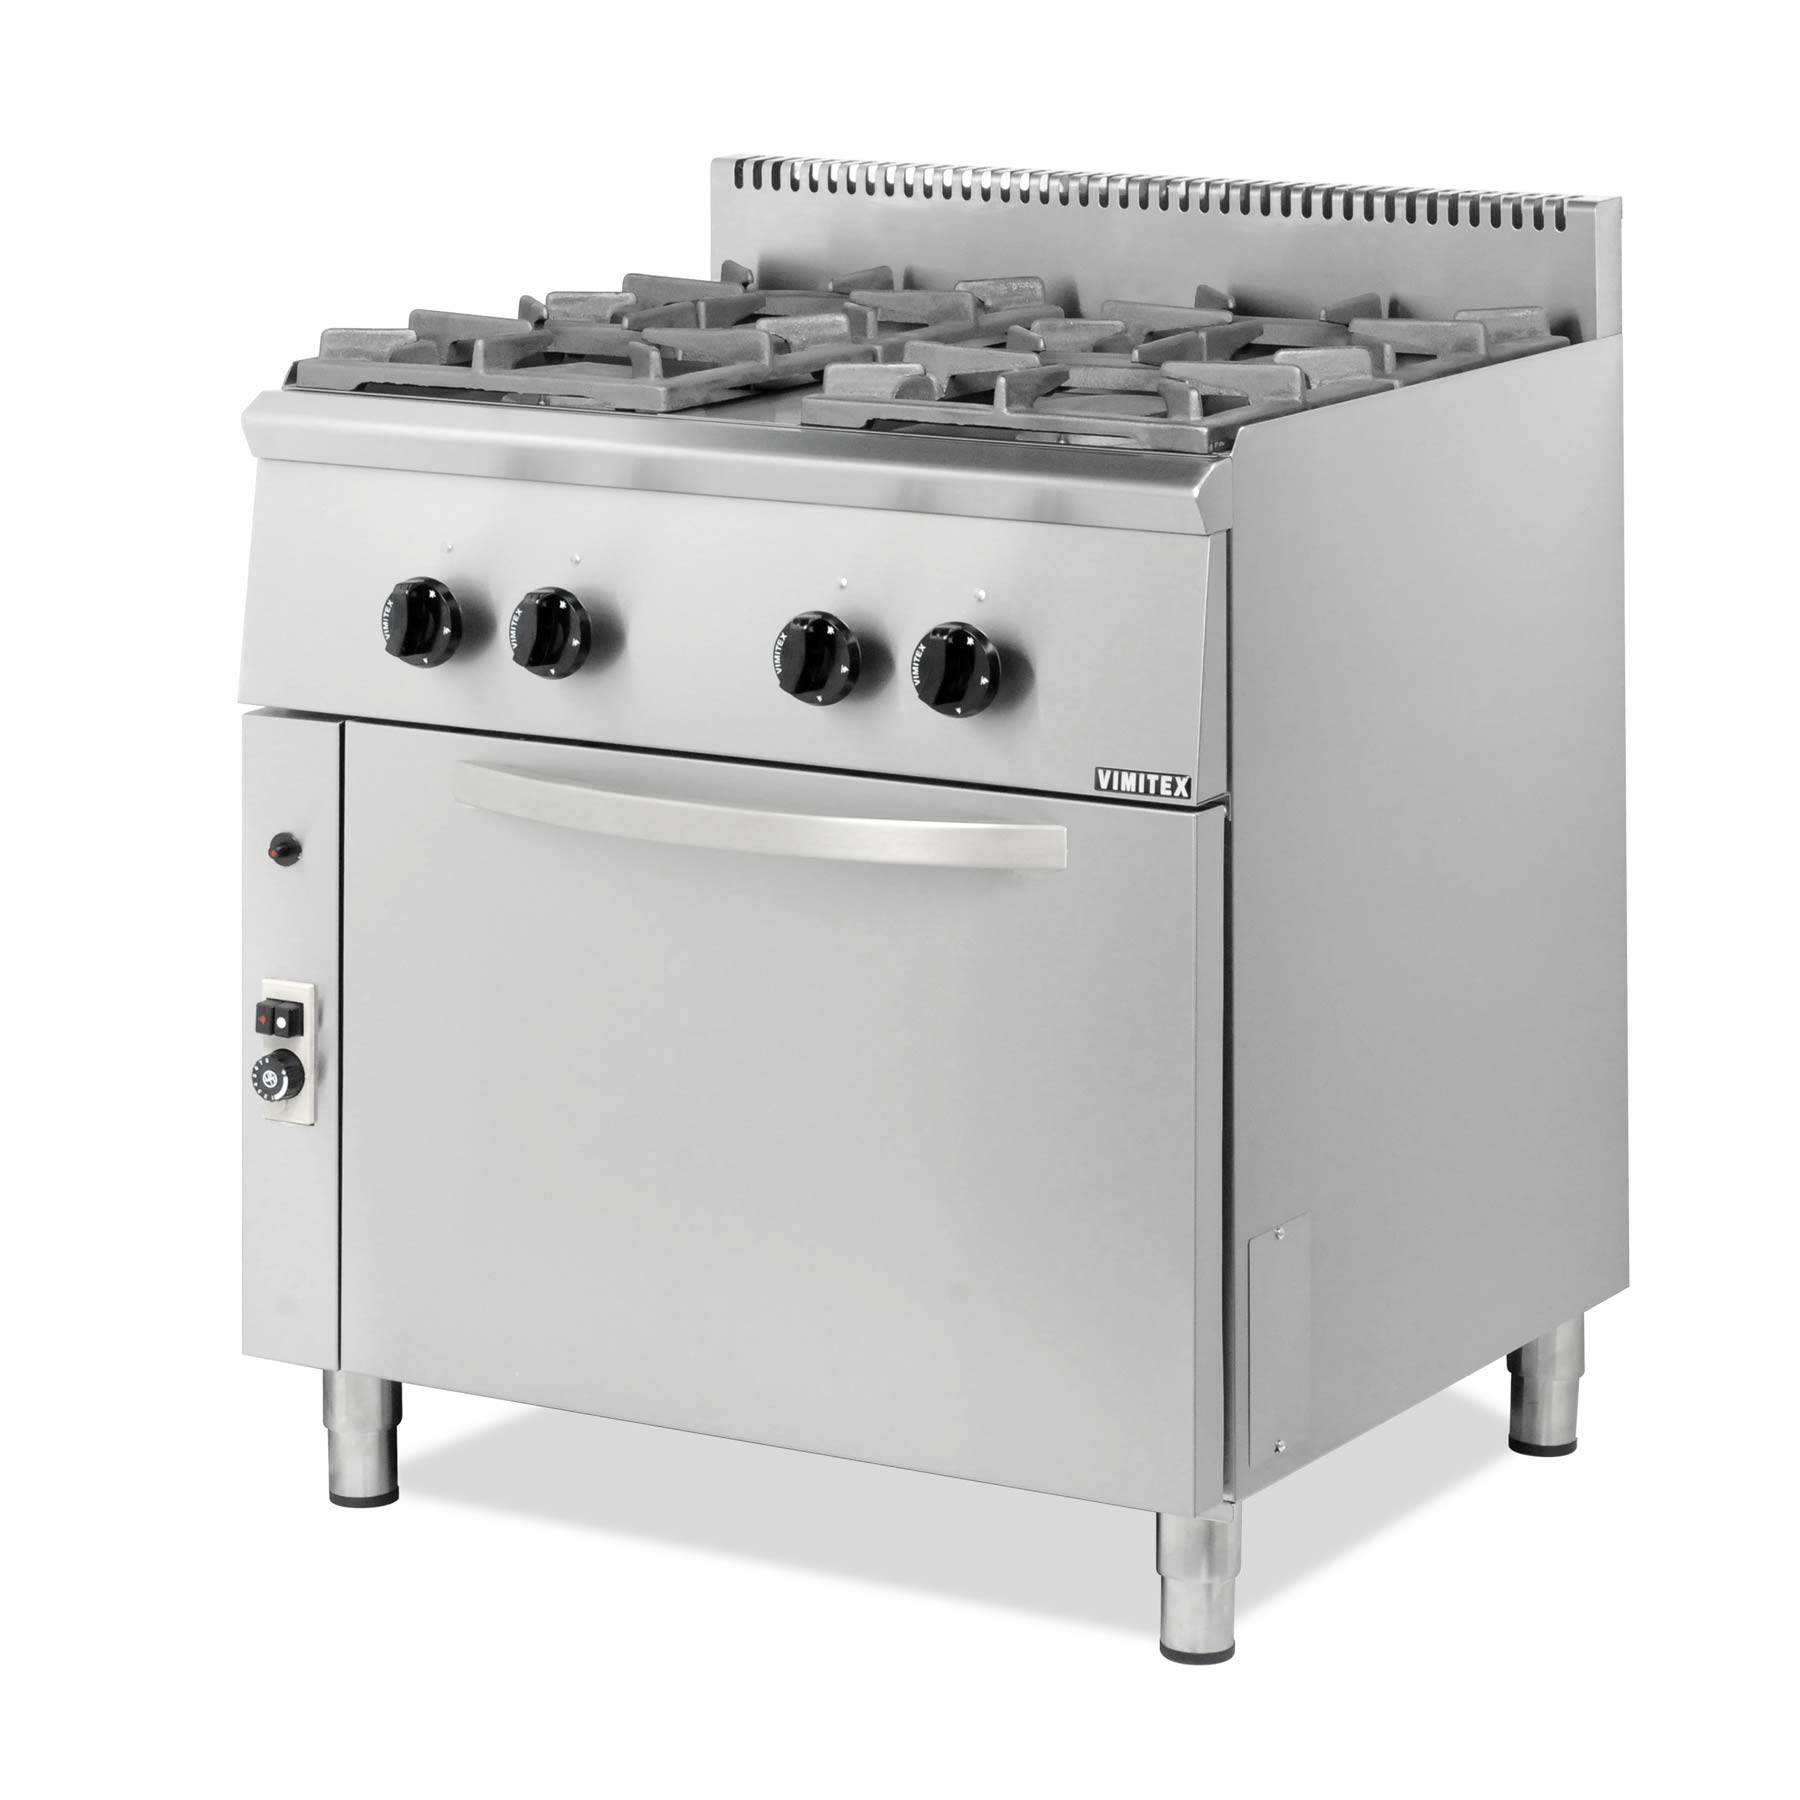 GAS COOKERS<br /><a href='https://www.vimitexshop.com/en/product-categories/gas-cookers'>Go to link</a>